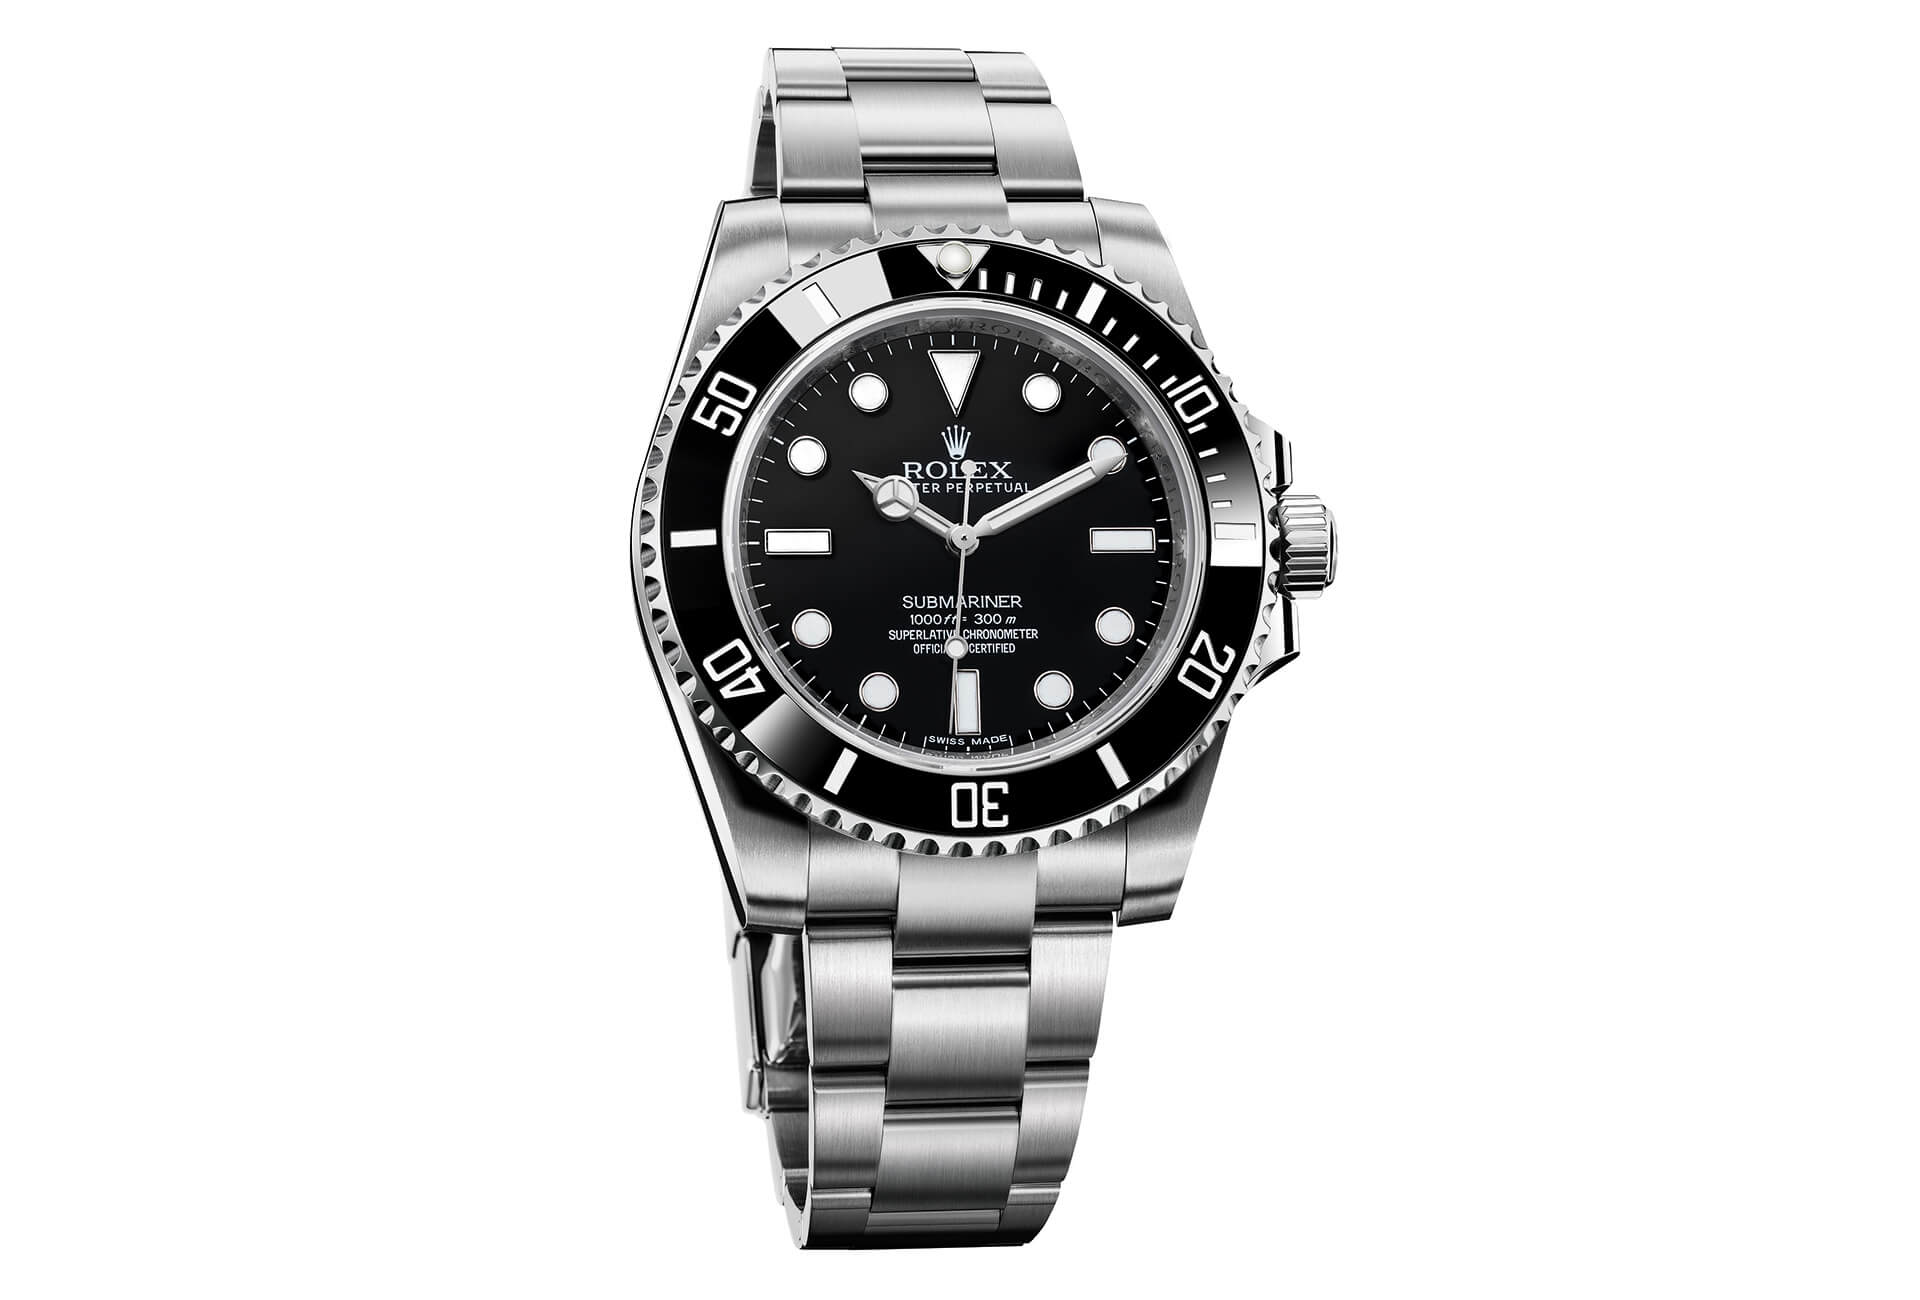 Rolex Submariner montre de plongée